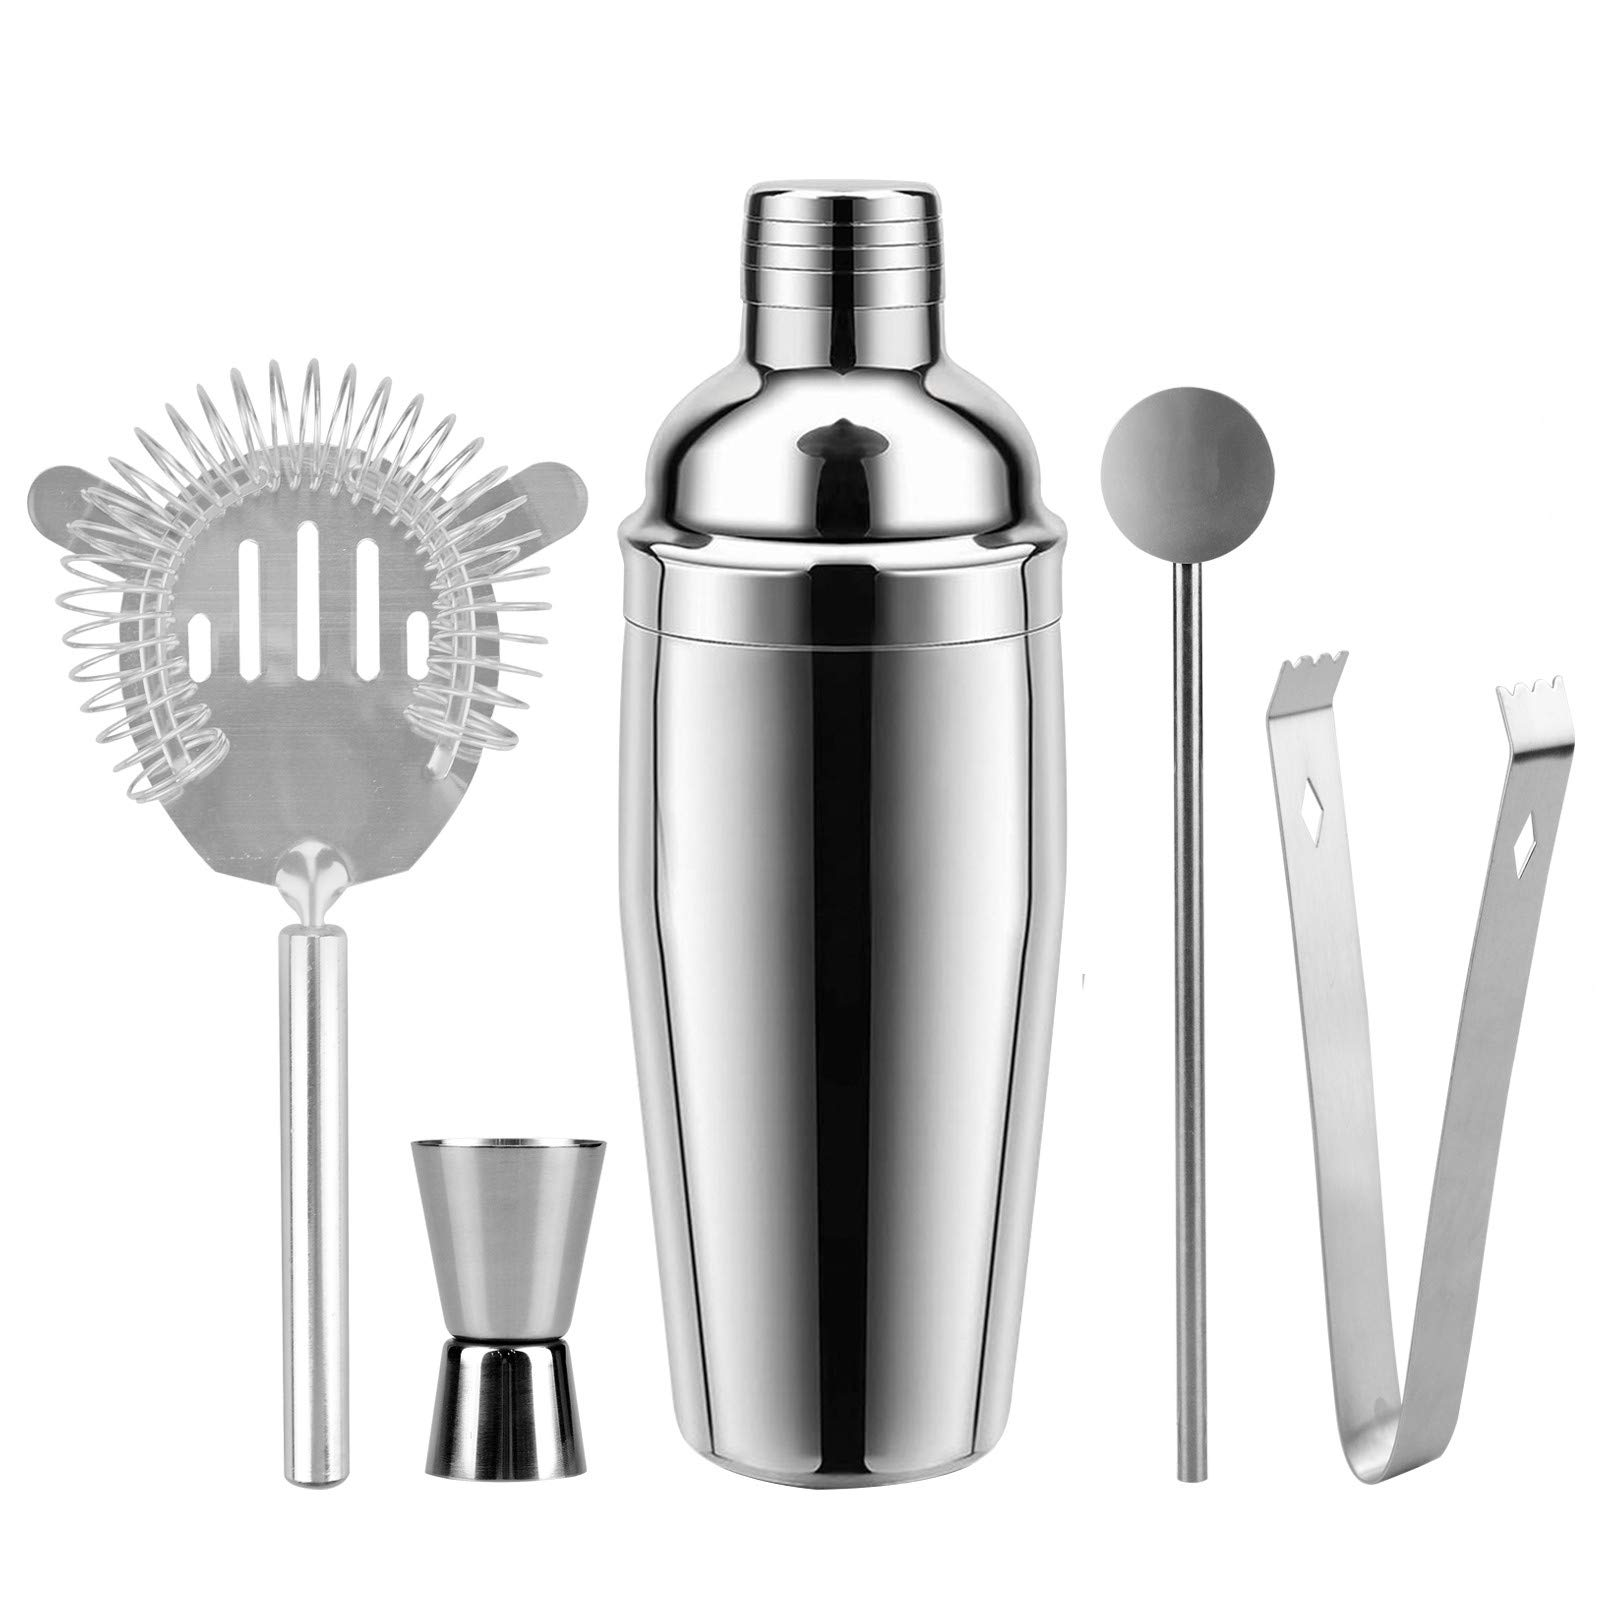 Cocktail Shaker 26 Ounce Martini Shakers Professional Stainless Steel Bartender Barware Tools Kit with Built-in Strainer Drink Recipes by Abool by Abool